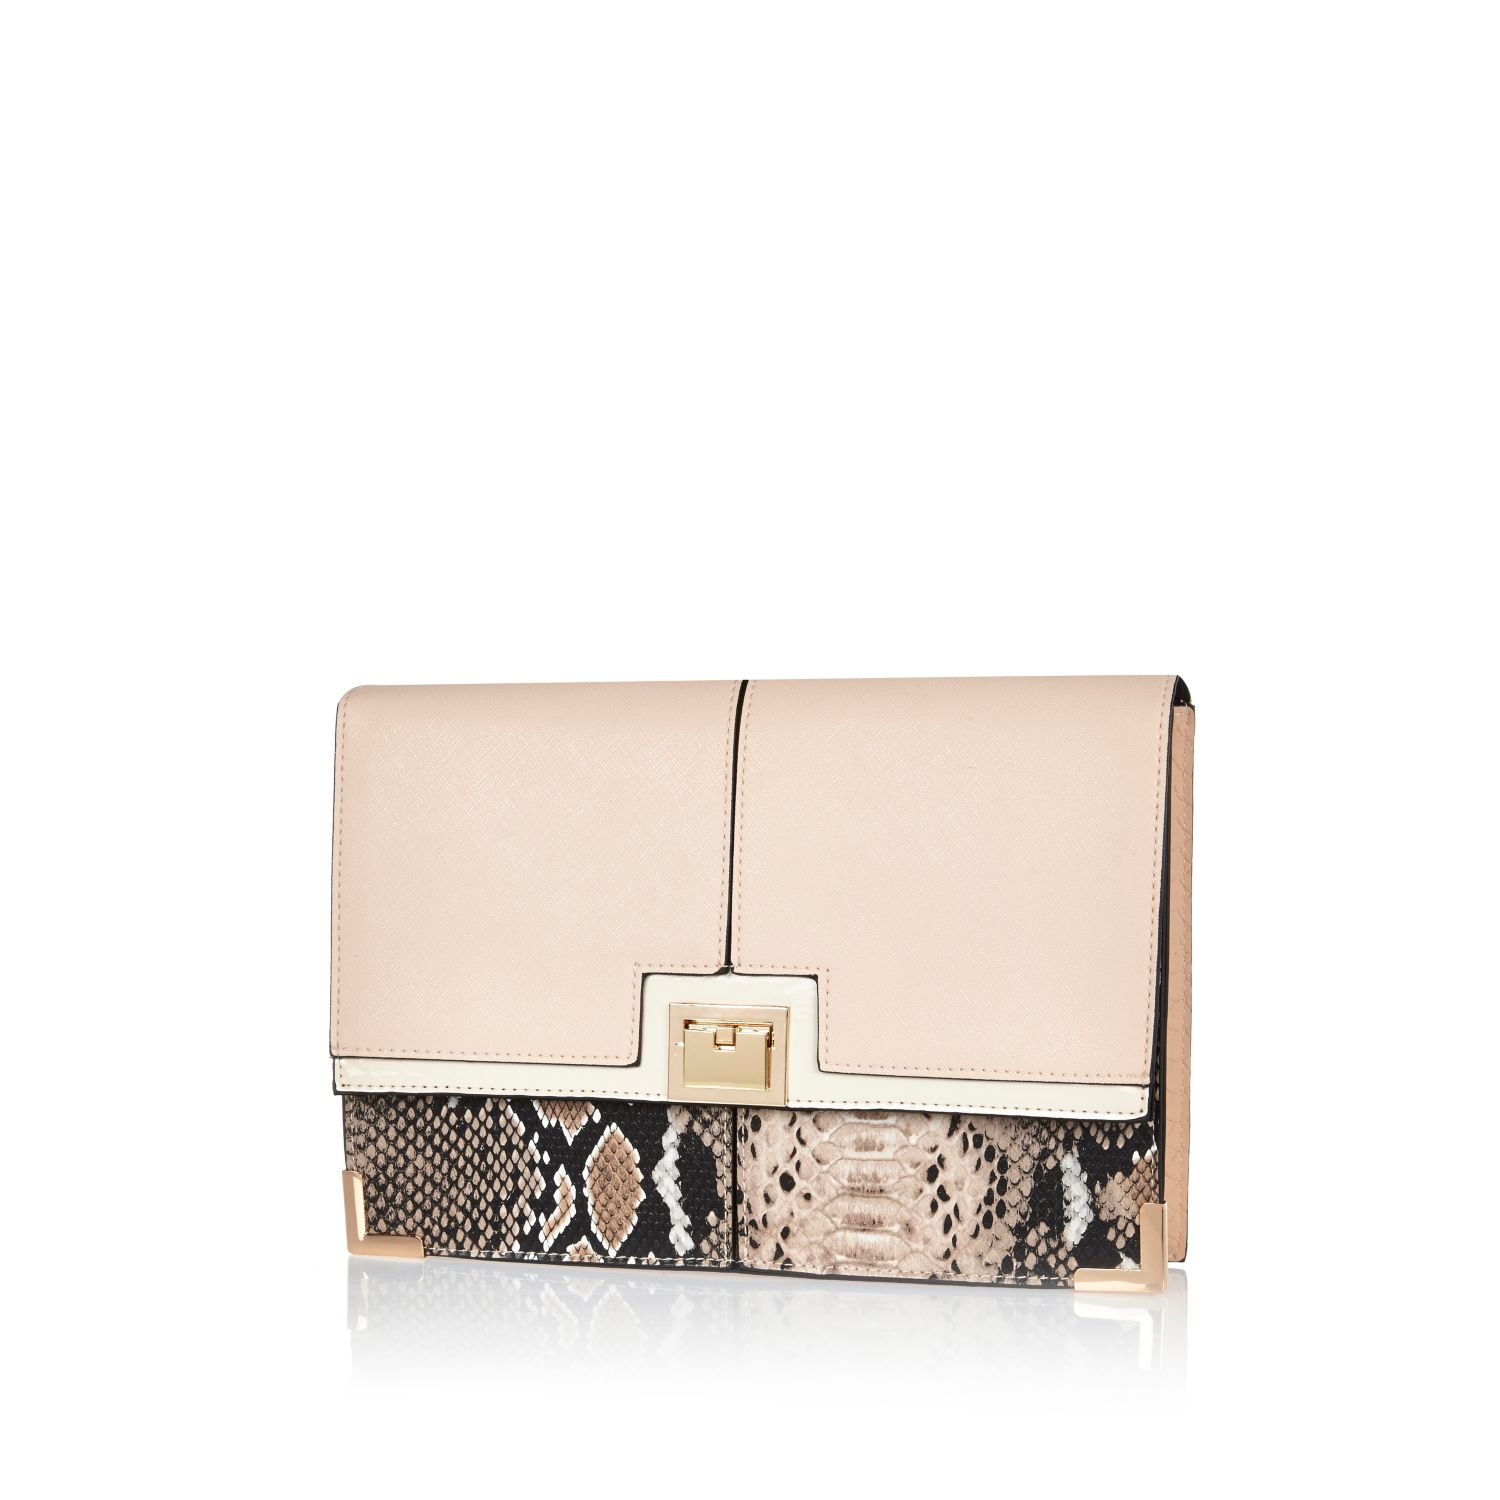 00d25204ea1a River Island Snake Print Clutch Bag in Natural - Lyst